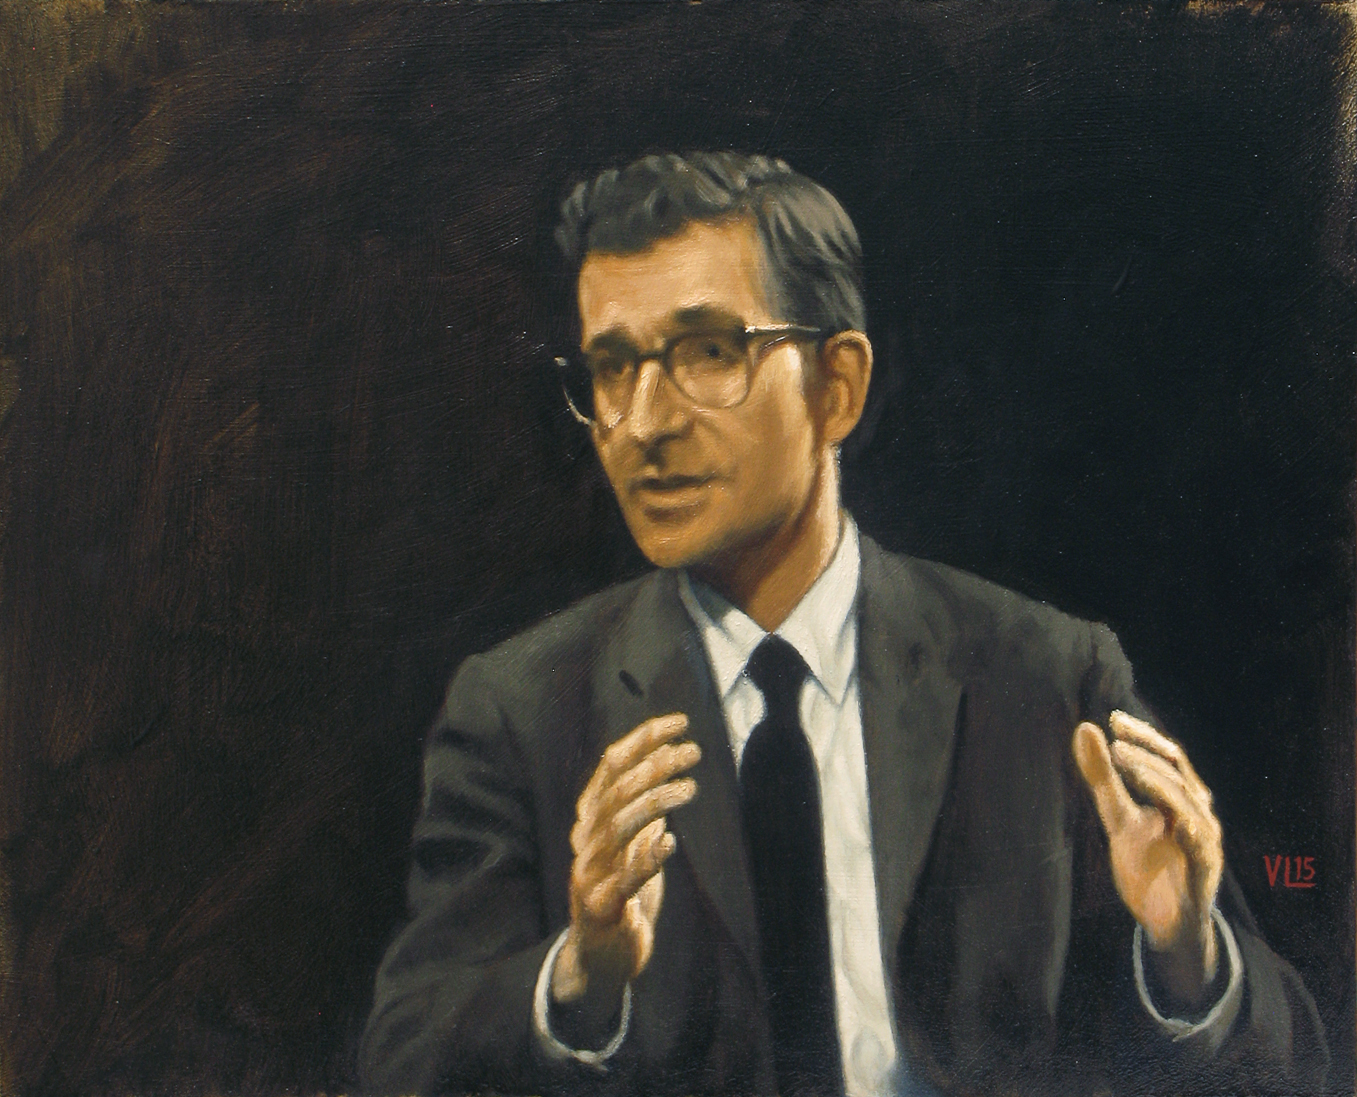 noam chomsky on firing line 1969, 2015, 37 x 30 (medium)